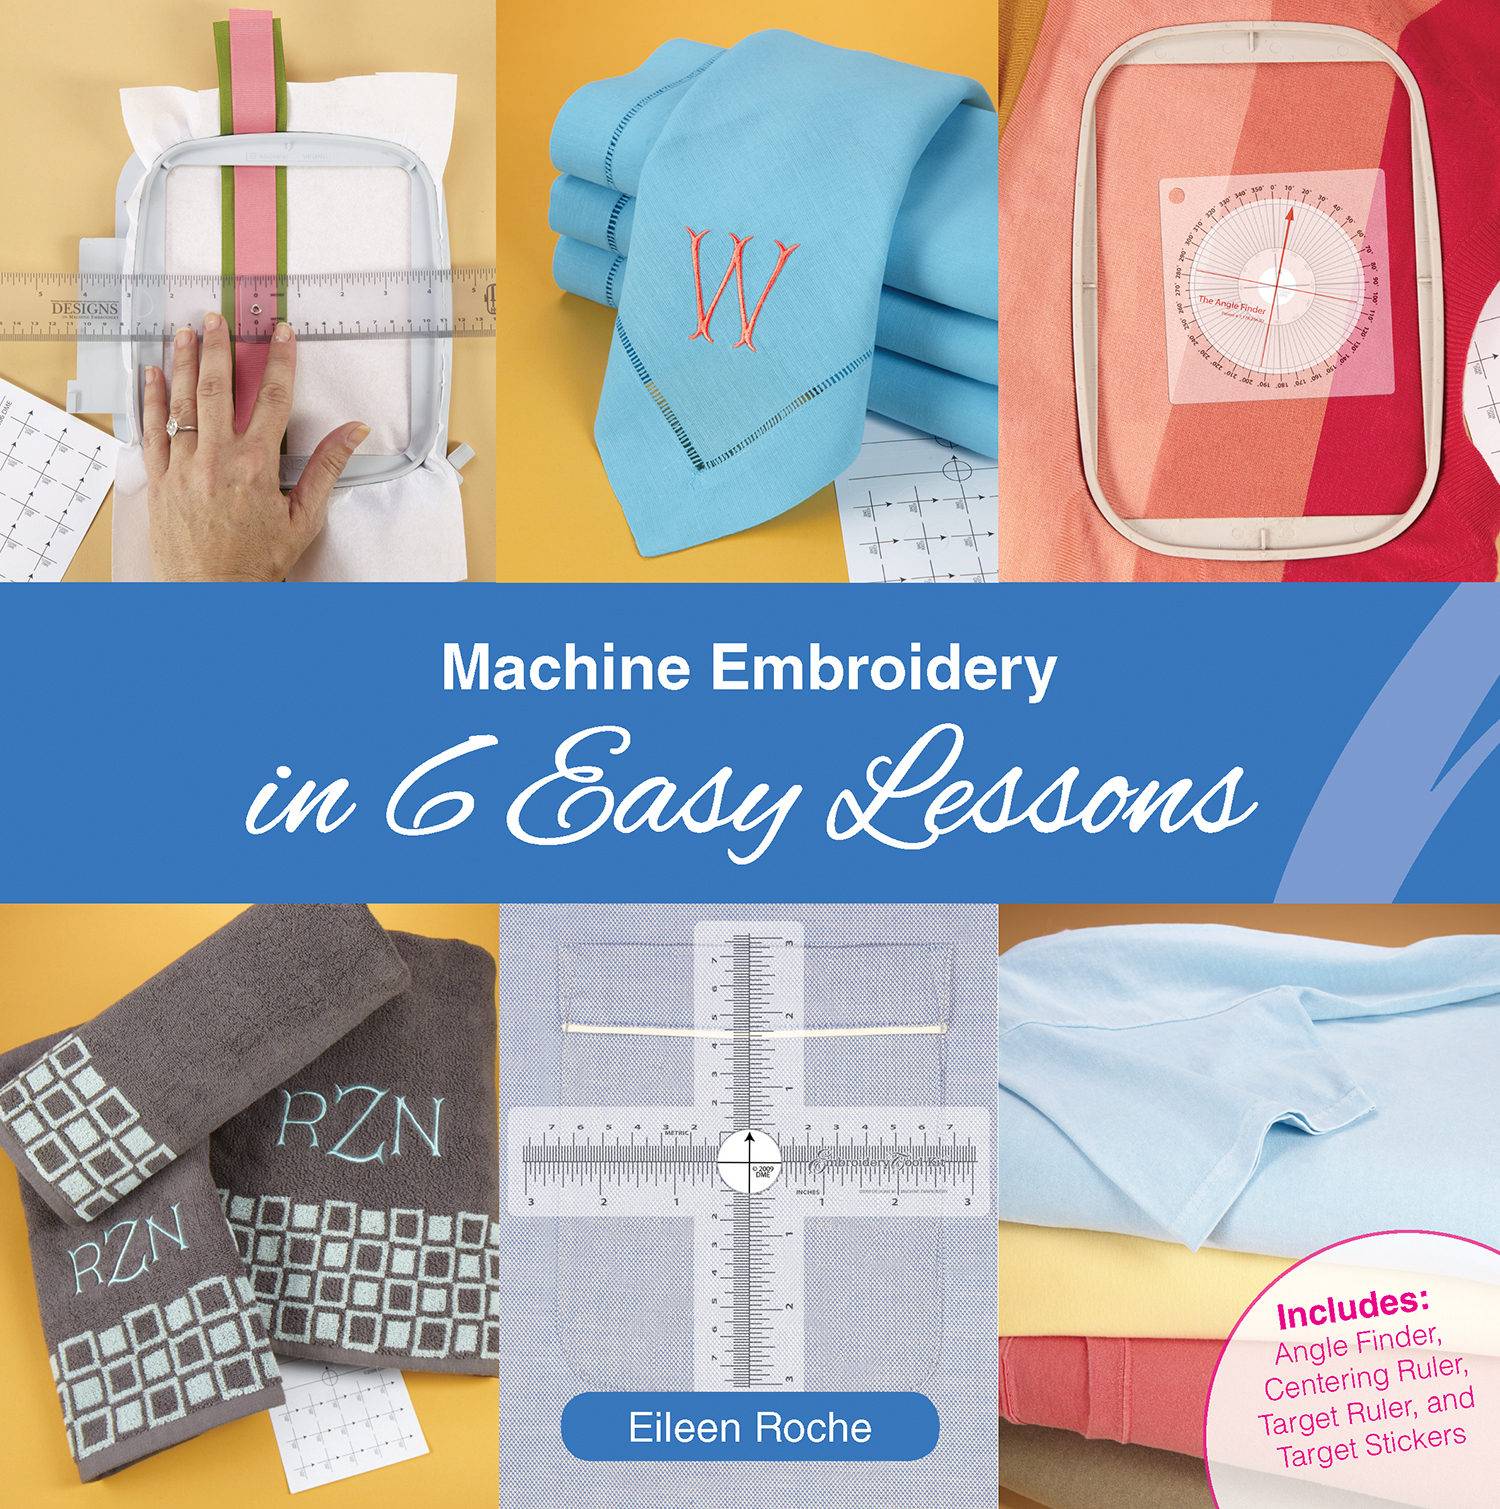 Machine Embroidery in 6 Lessons